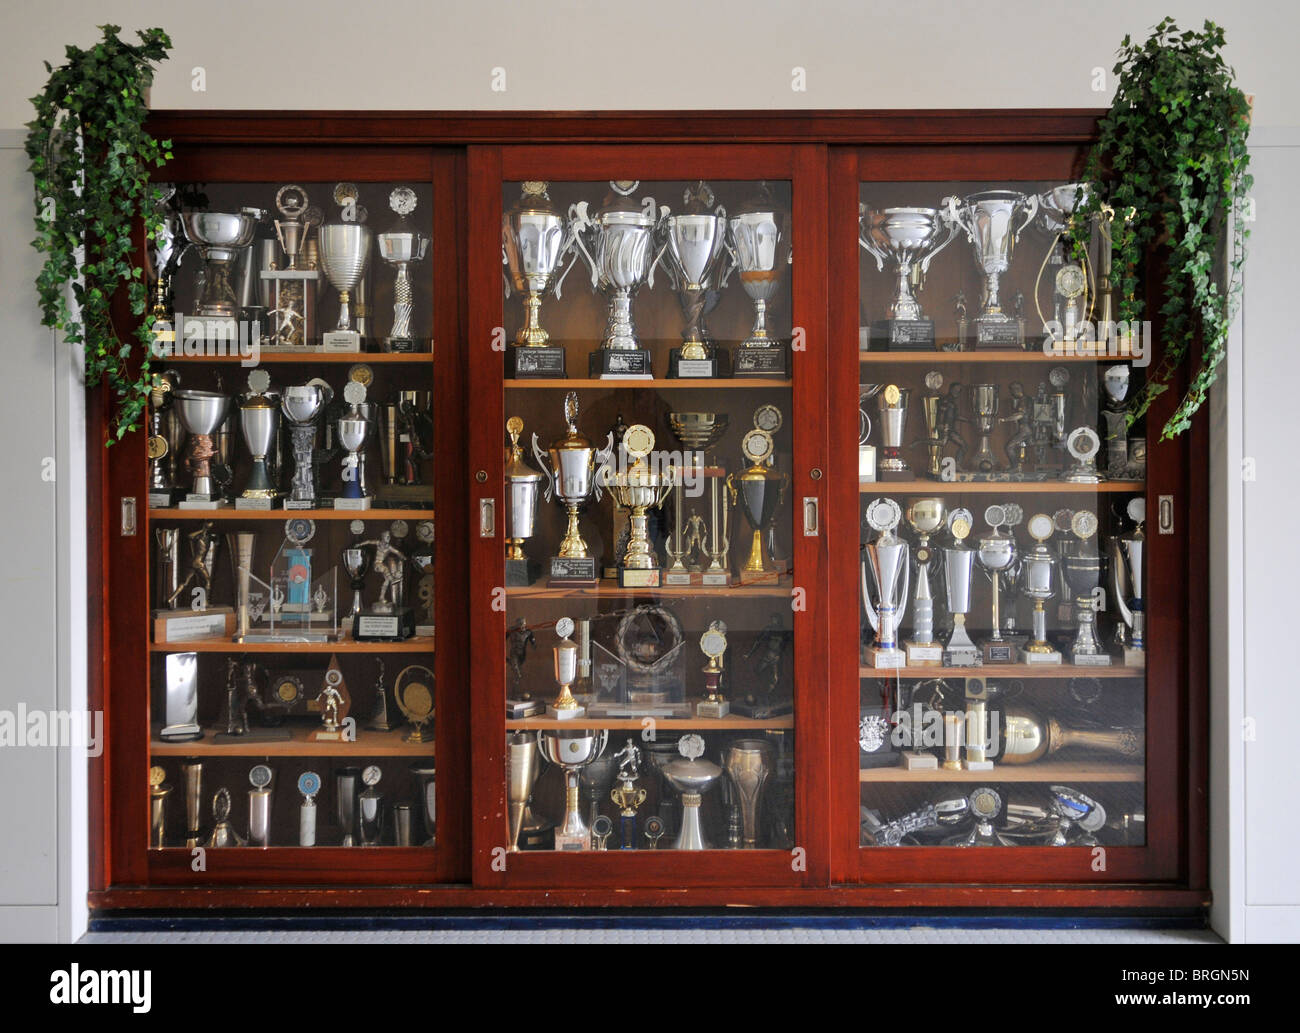 Cabinet Filled With Football Trophies In Home Of German Soccer Club